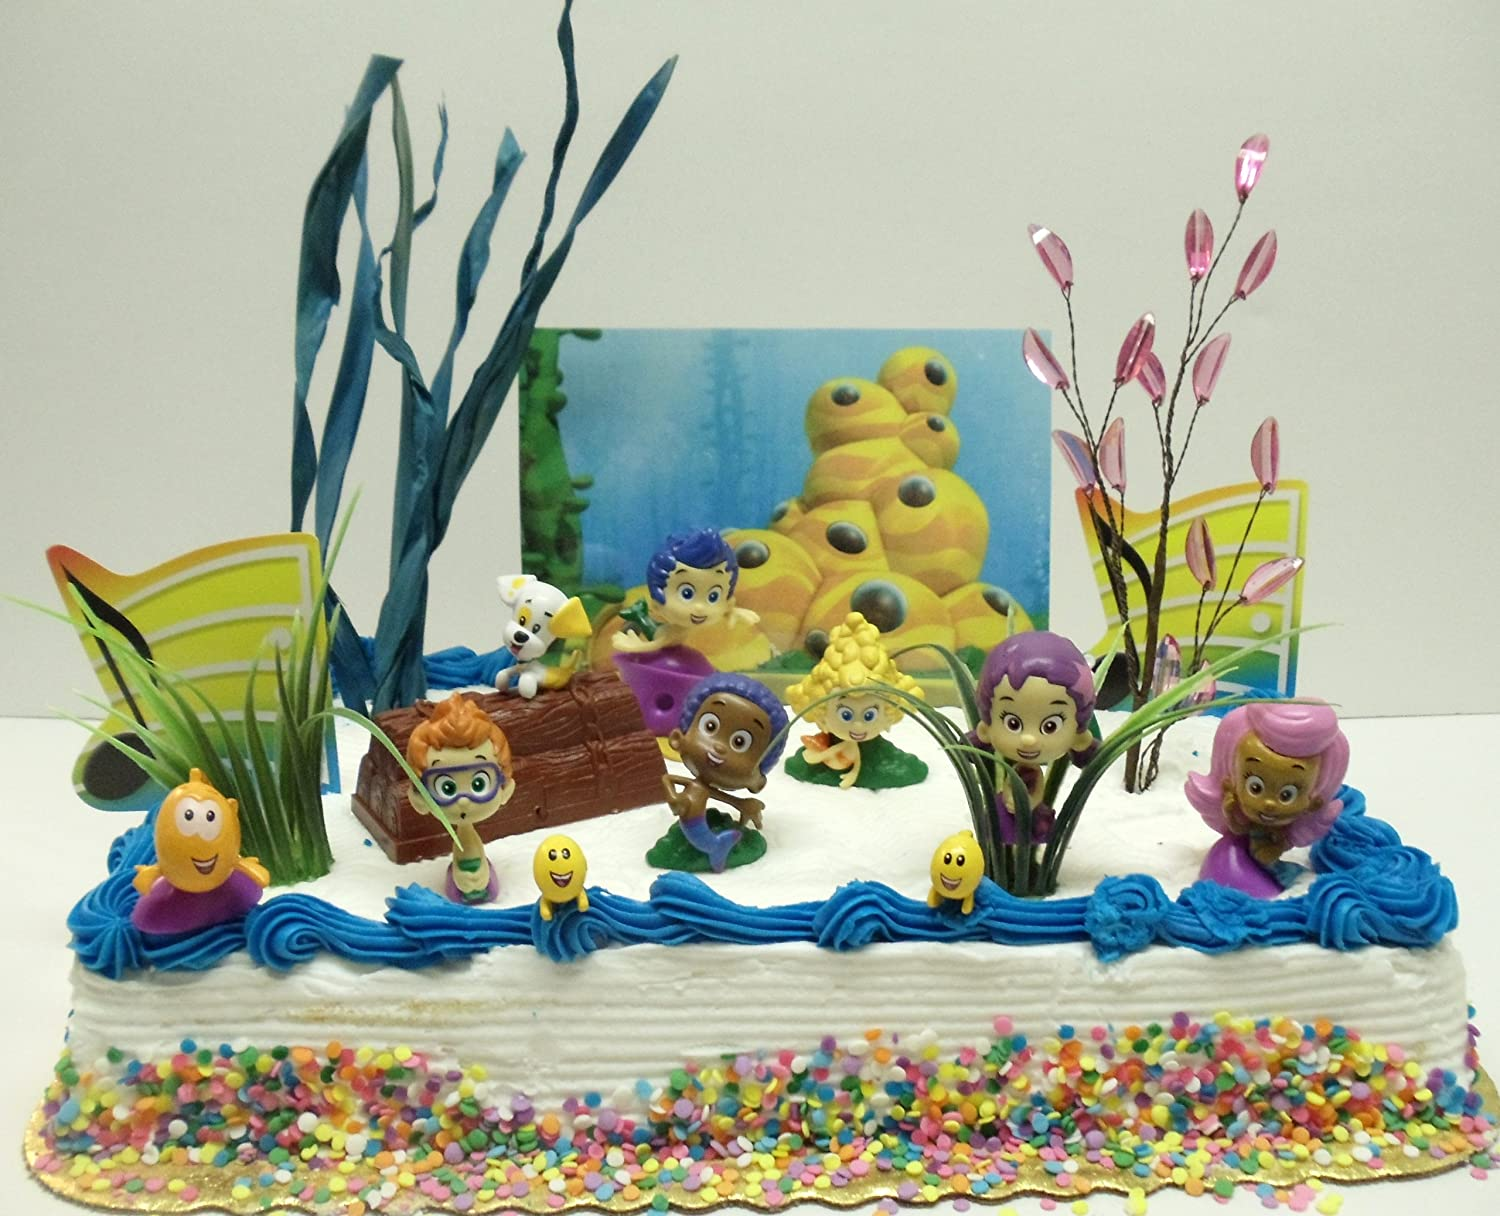 bubble guppies 20 piece birthday cake topper set featuring gil